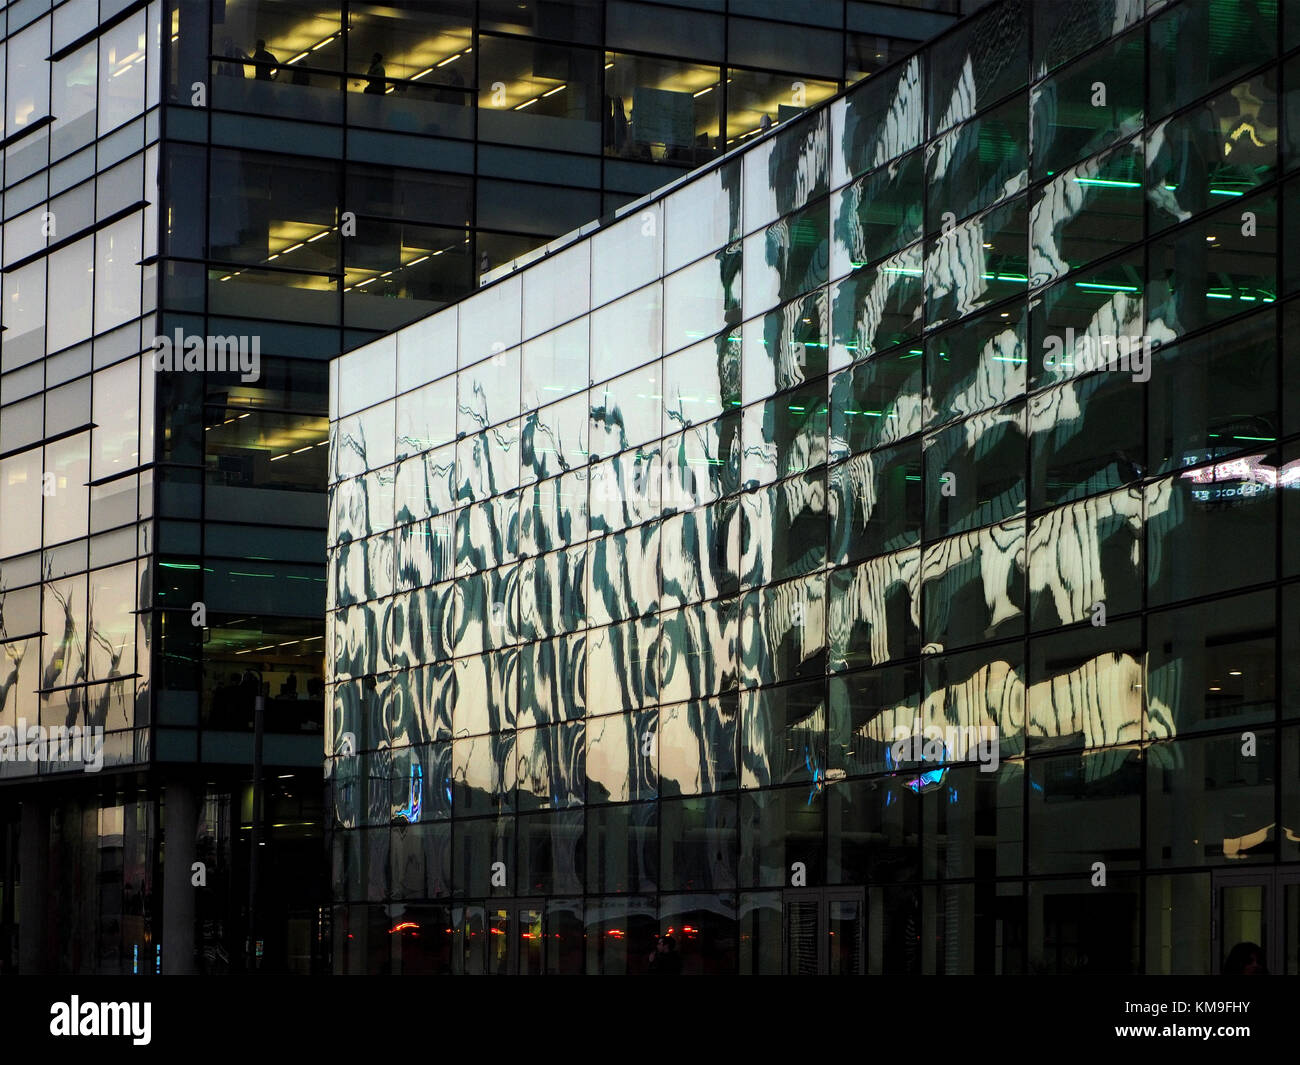 distorted reflections of the evening cityscape in new glazed buildings at Salford Quays, Manchester, UK as dusk - Stock Image